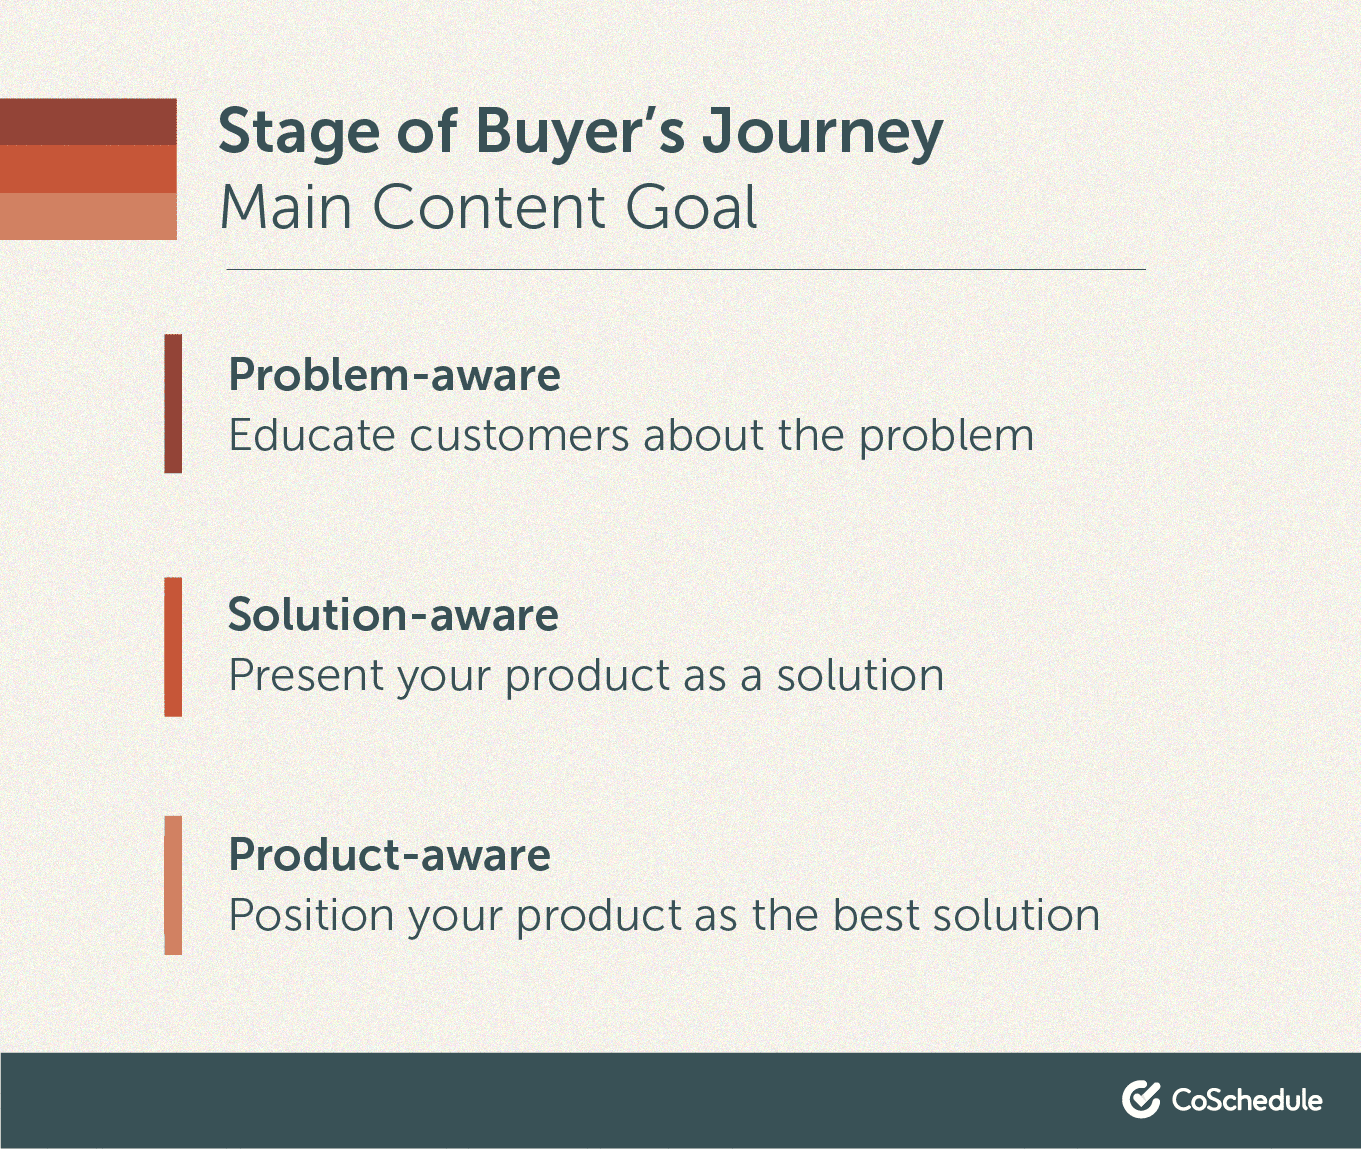 Main content goal in the buyer journey